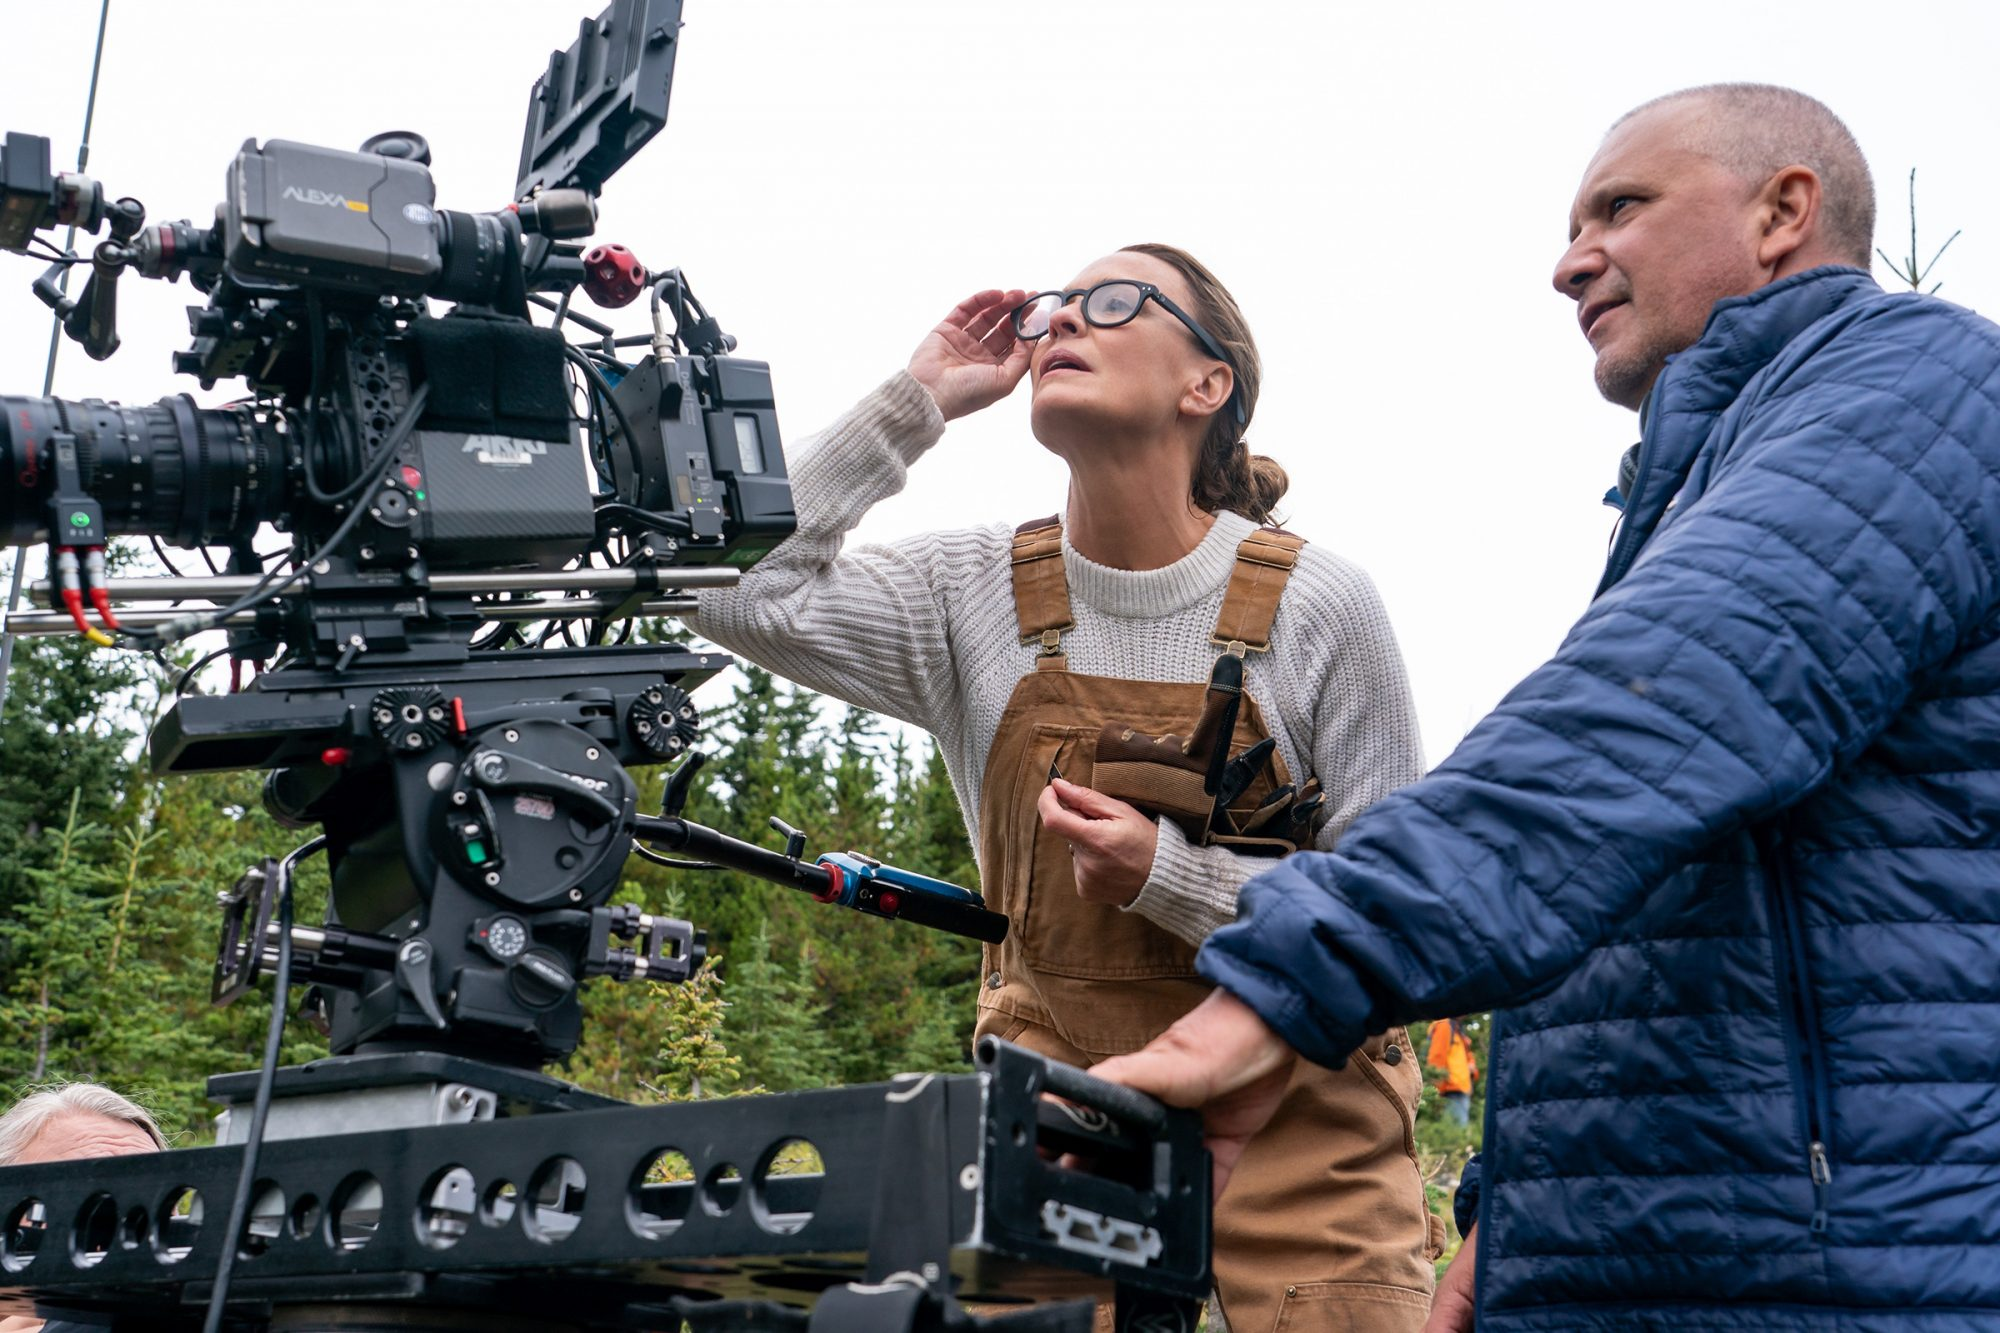 Director / actor Robin Wright (left) and director of photography Bobby Bukowski (right) on the set of LAND, a Focus Features release